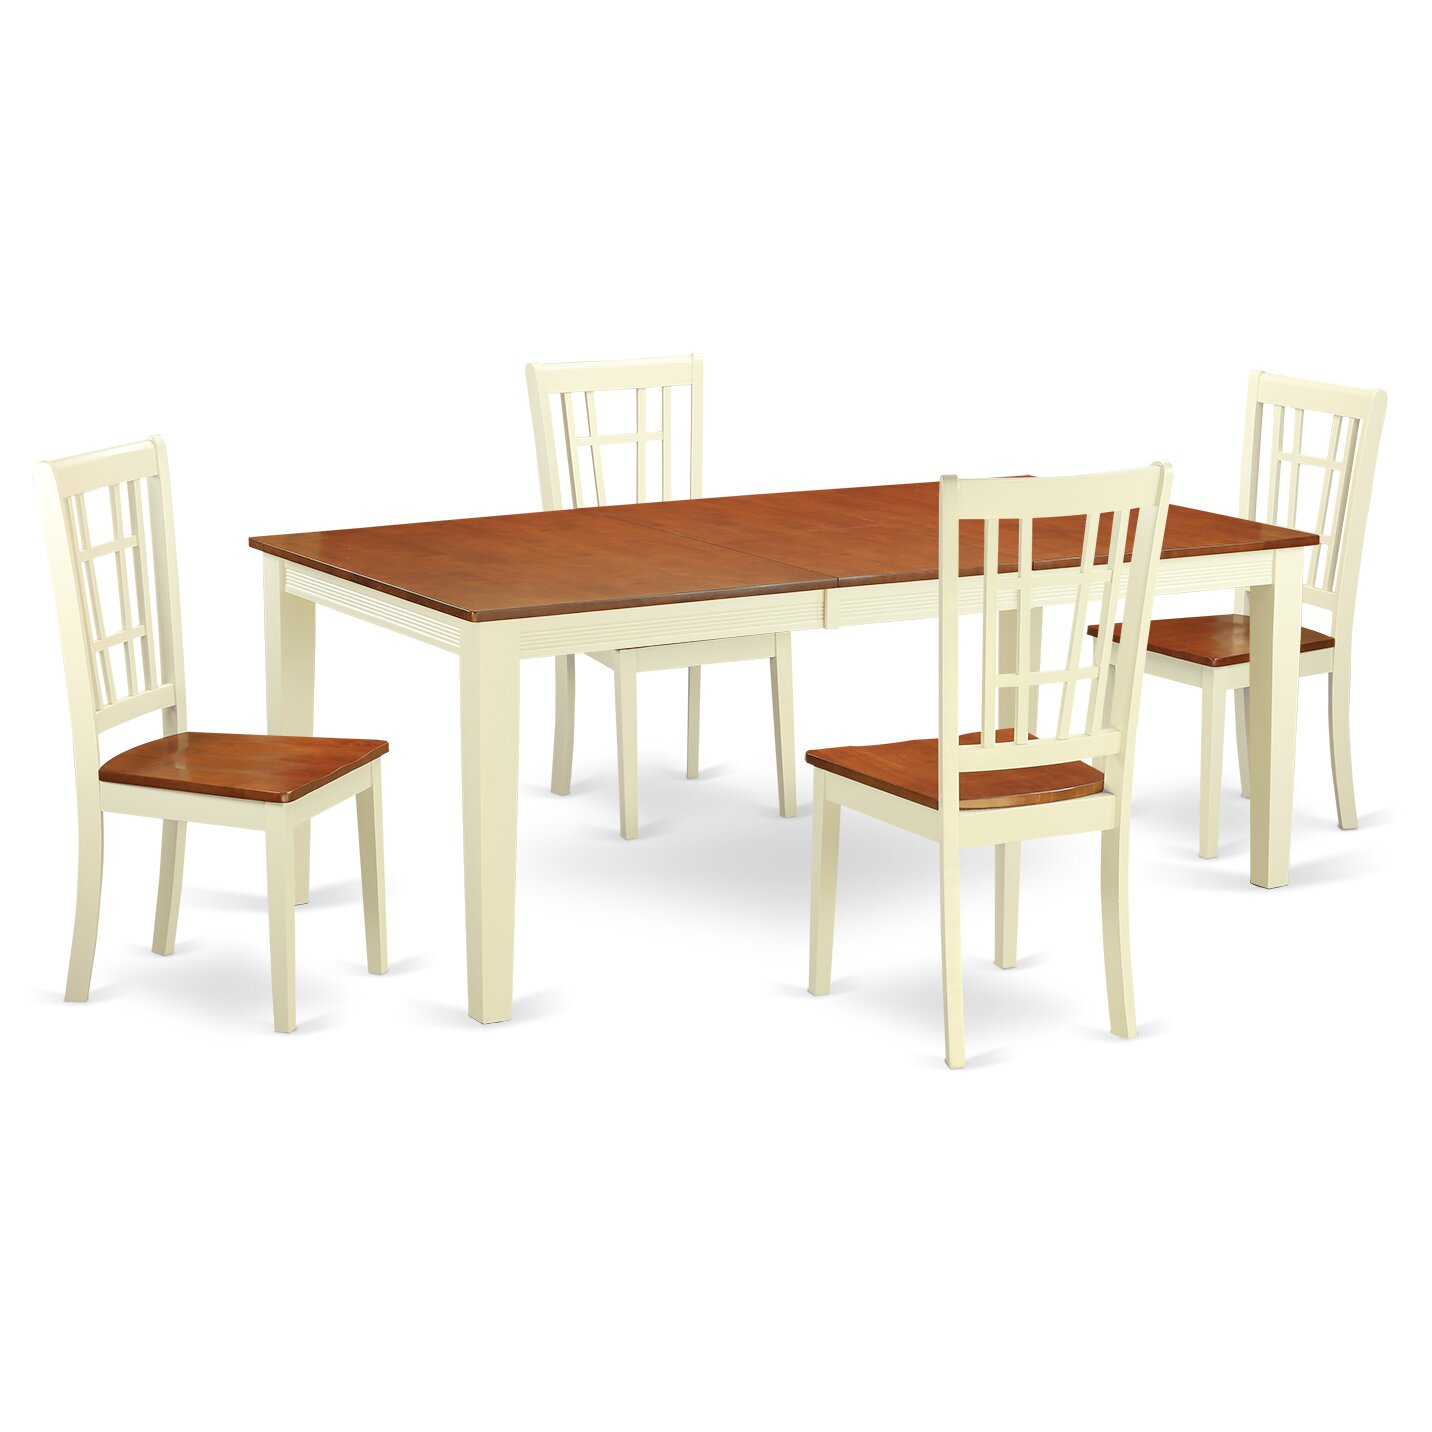 East west quincy 5 piece dining set wayfair for Small dining sets for 4